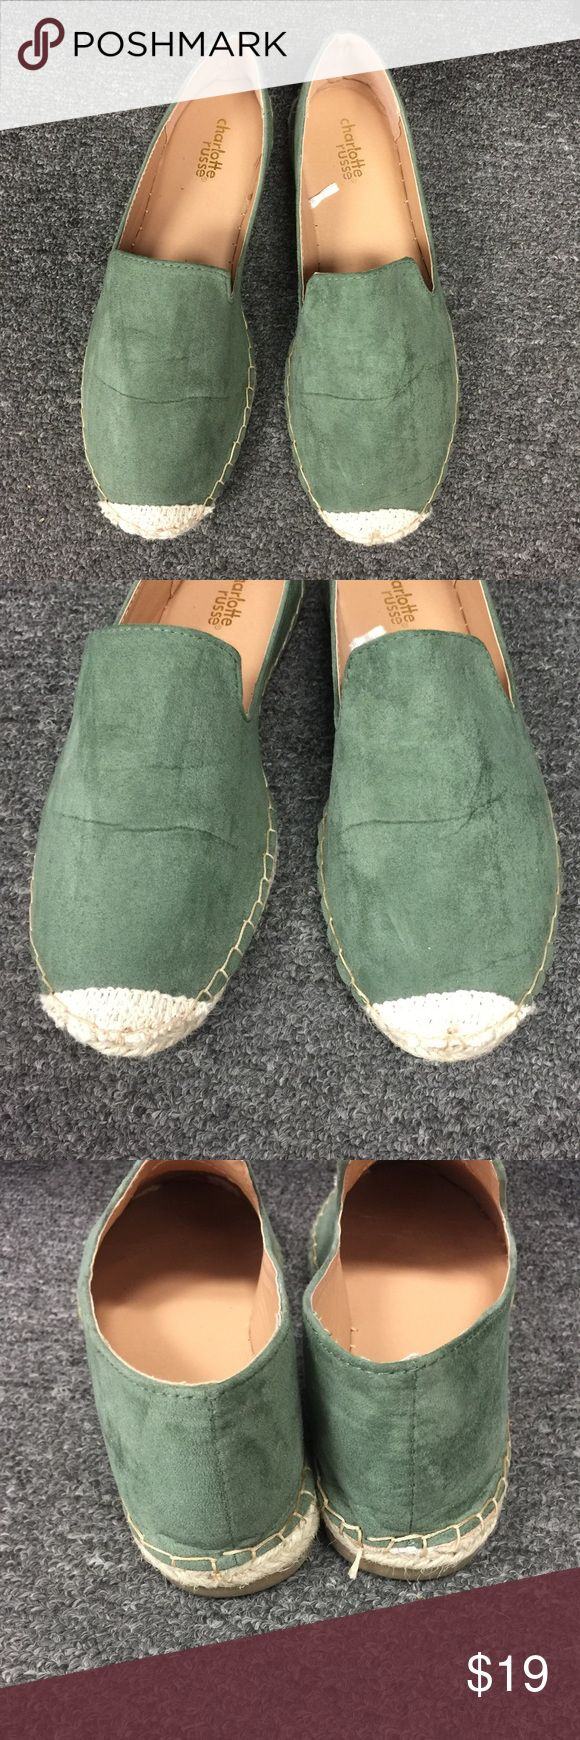 Spotted while shopping on Poshmark: New in a Bag Pine Green Espadrilles Flats! #poshmark #fashion #shopping #style #Charlotte Russe #Shoes